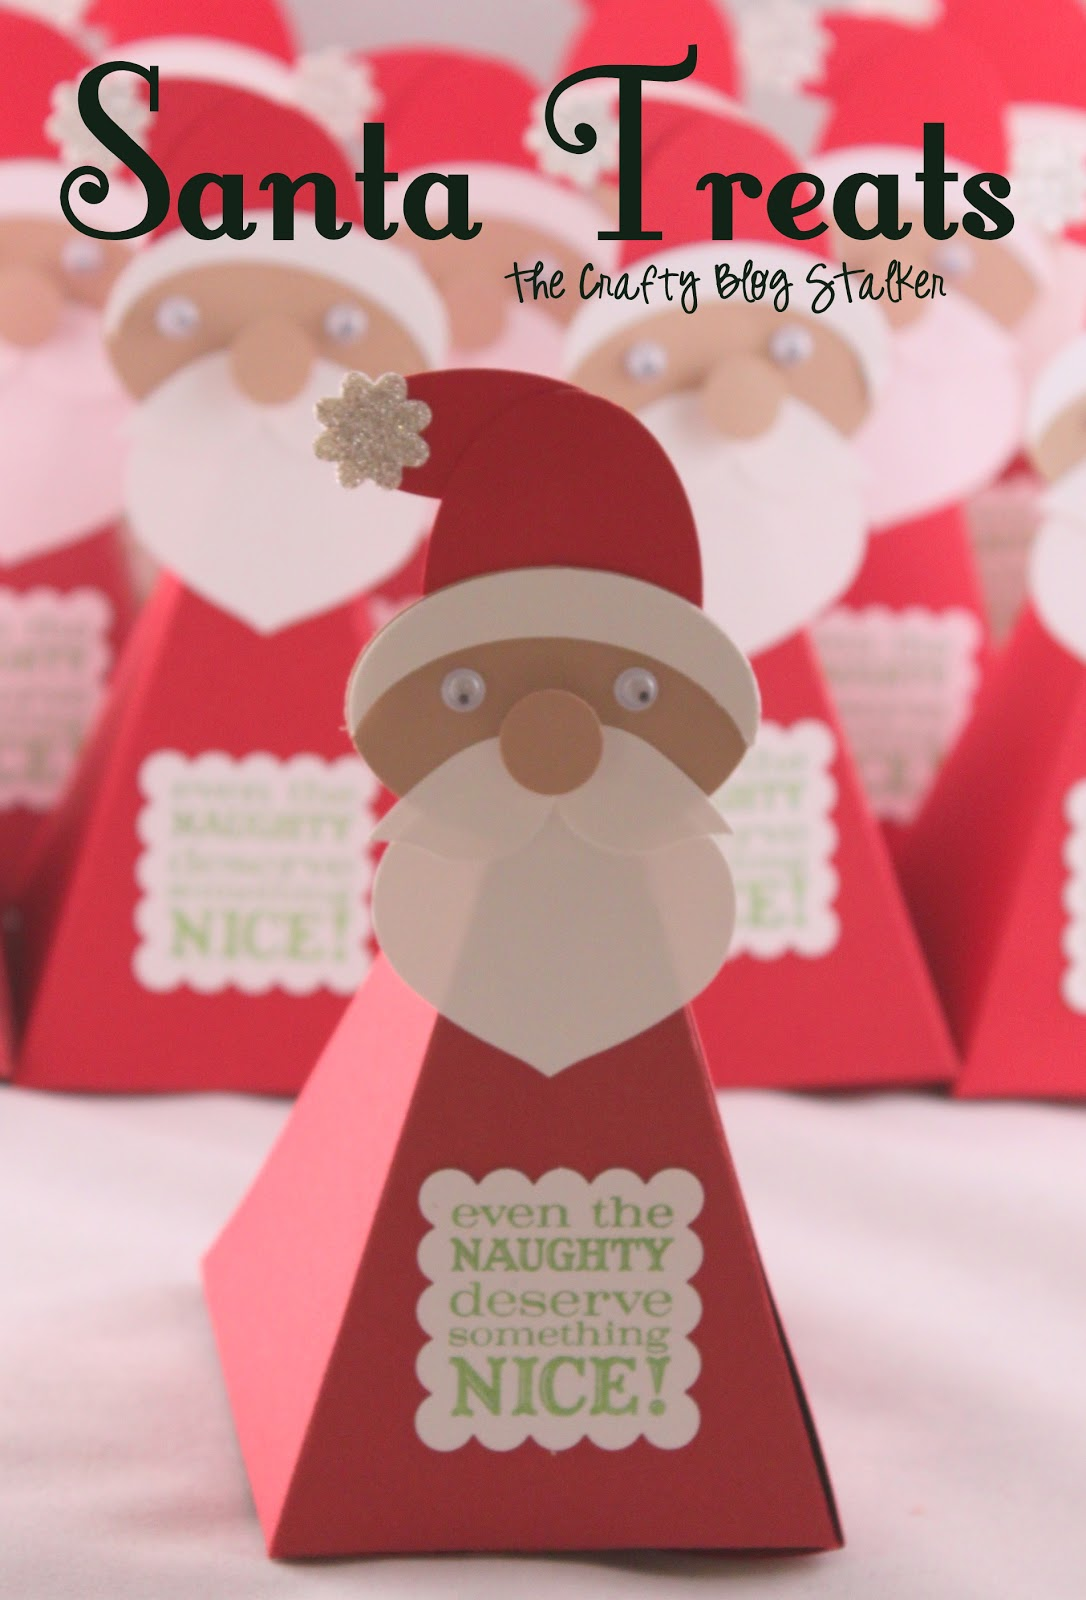 Tutorial for santa treat boxes the crafty blog stalker for Great gifts for neighbors on the holiday